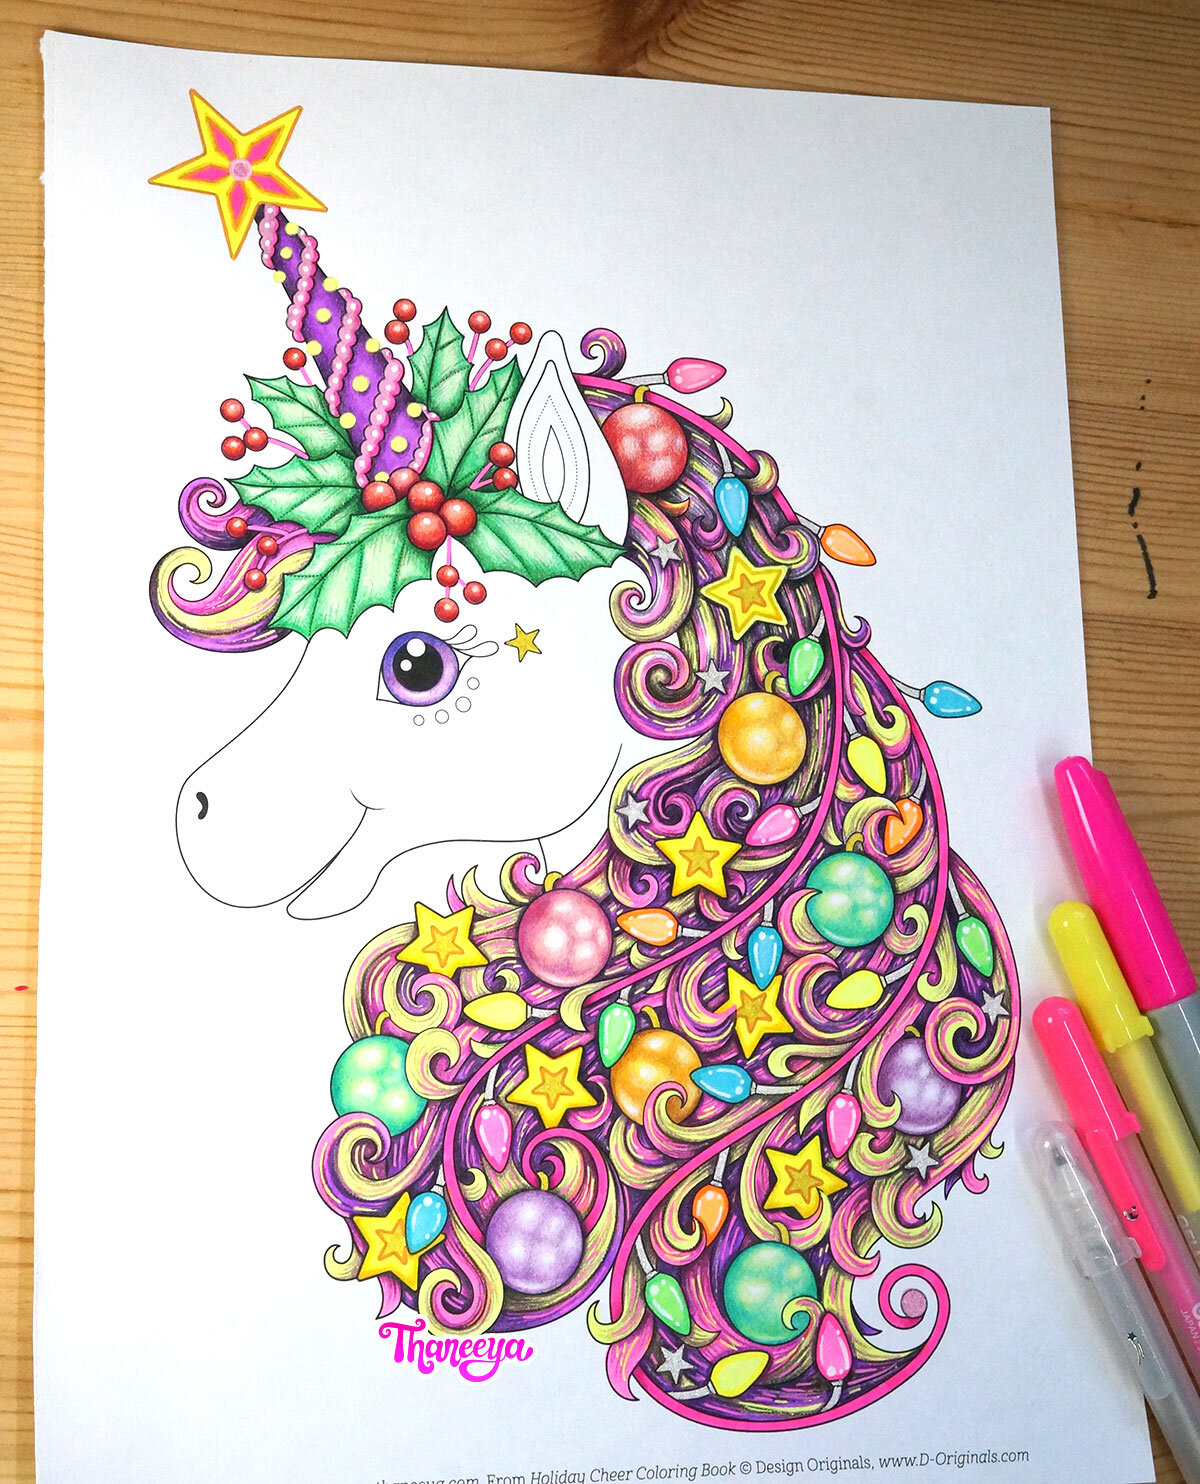 - Unicorn Coloring Page Tutorial - Detailed Coloring Lesson & Tips